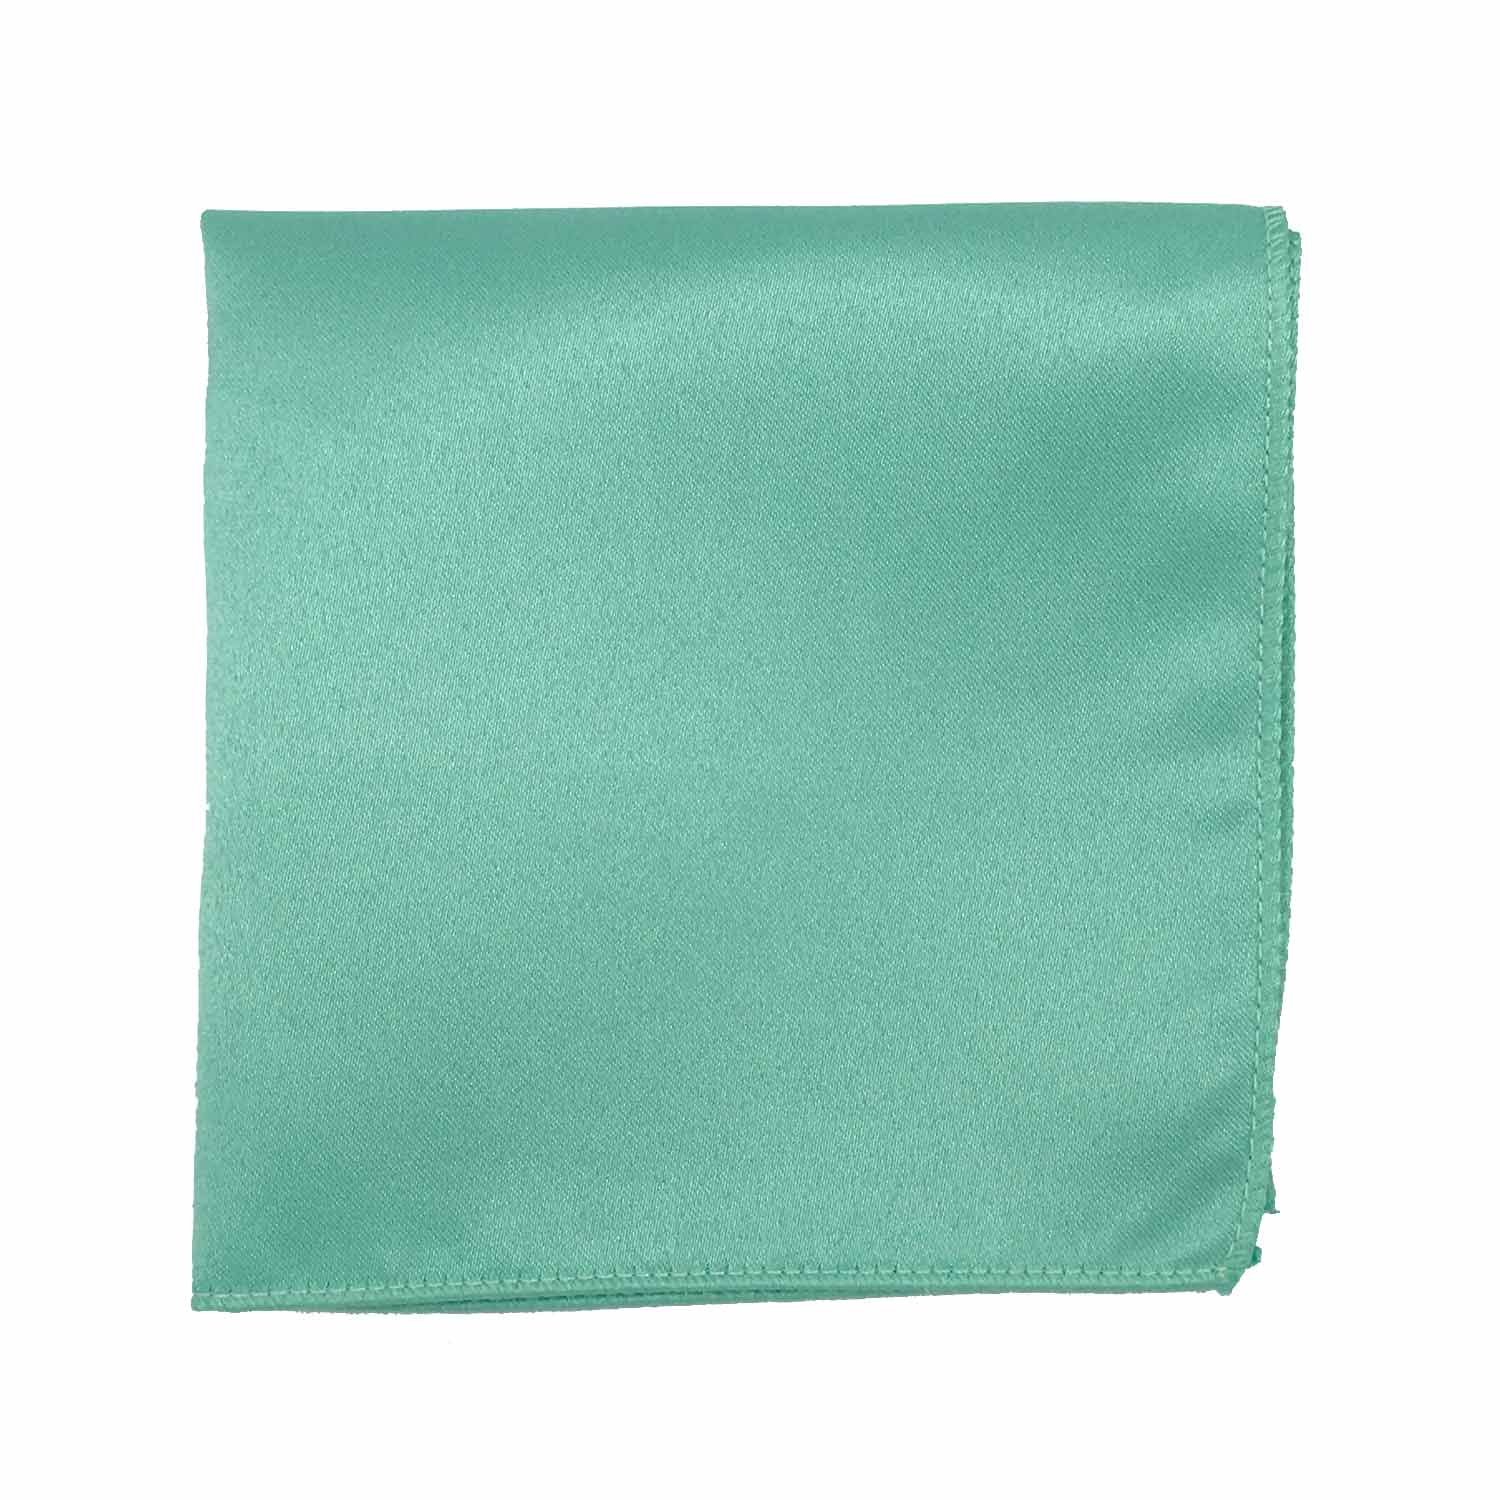 Spencer J's Satin Pocket Squares Handkerchief Boys and Mens (Mint) by Spencer J's (Image #1)